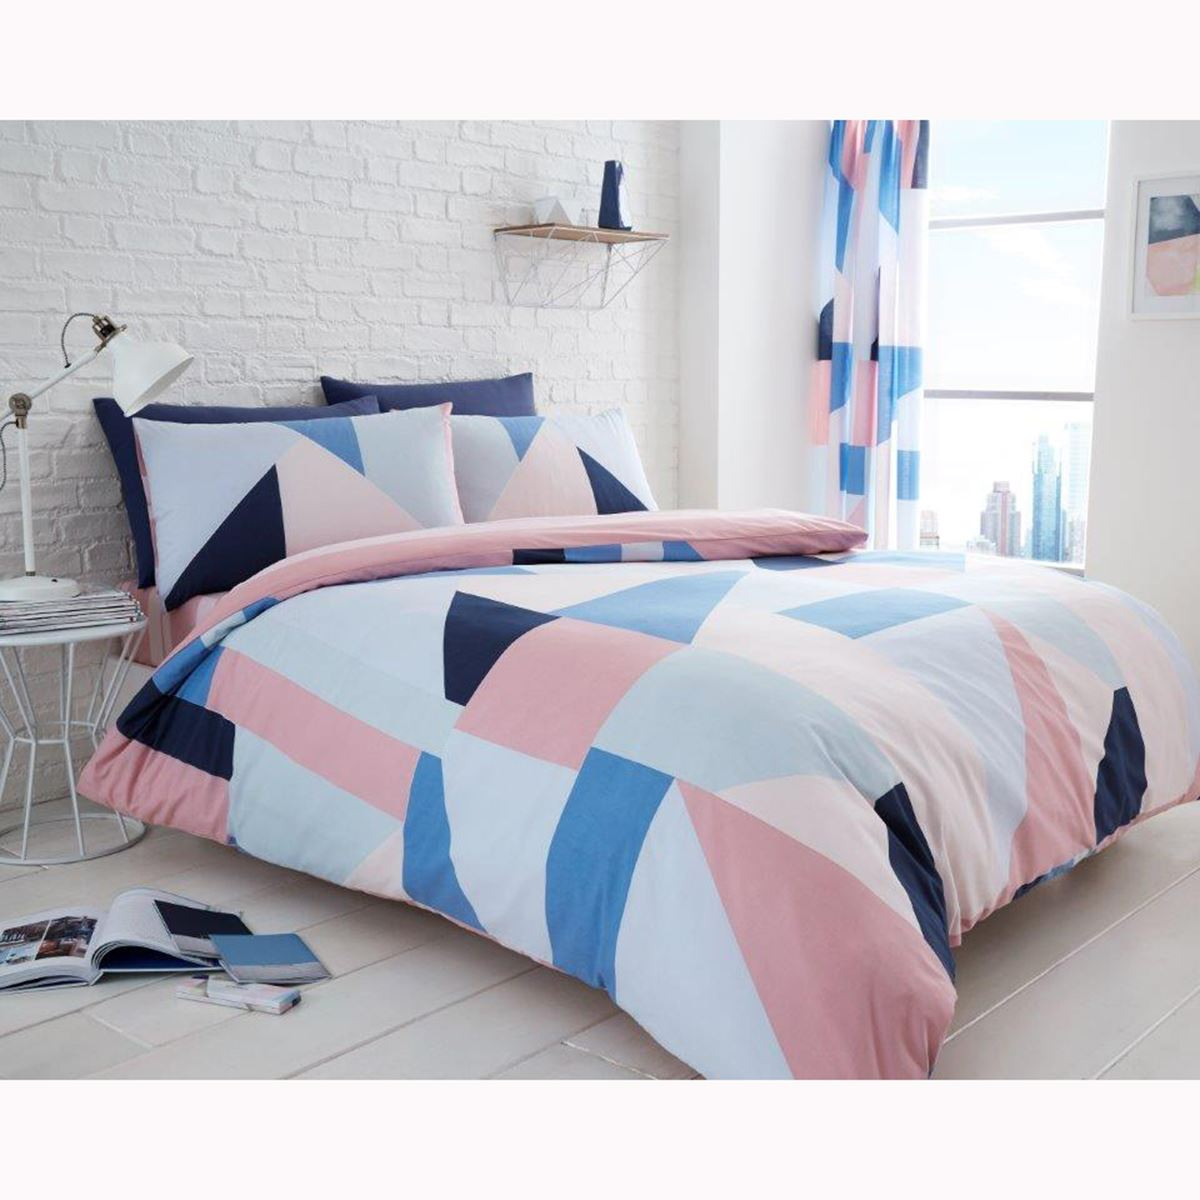 SYDNEY GEOMETRIC DUVET COVER SET BEDDING GREY BLUE